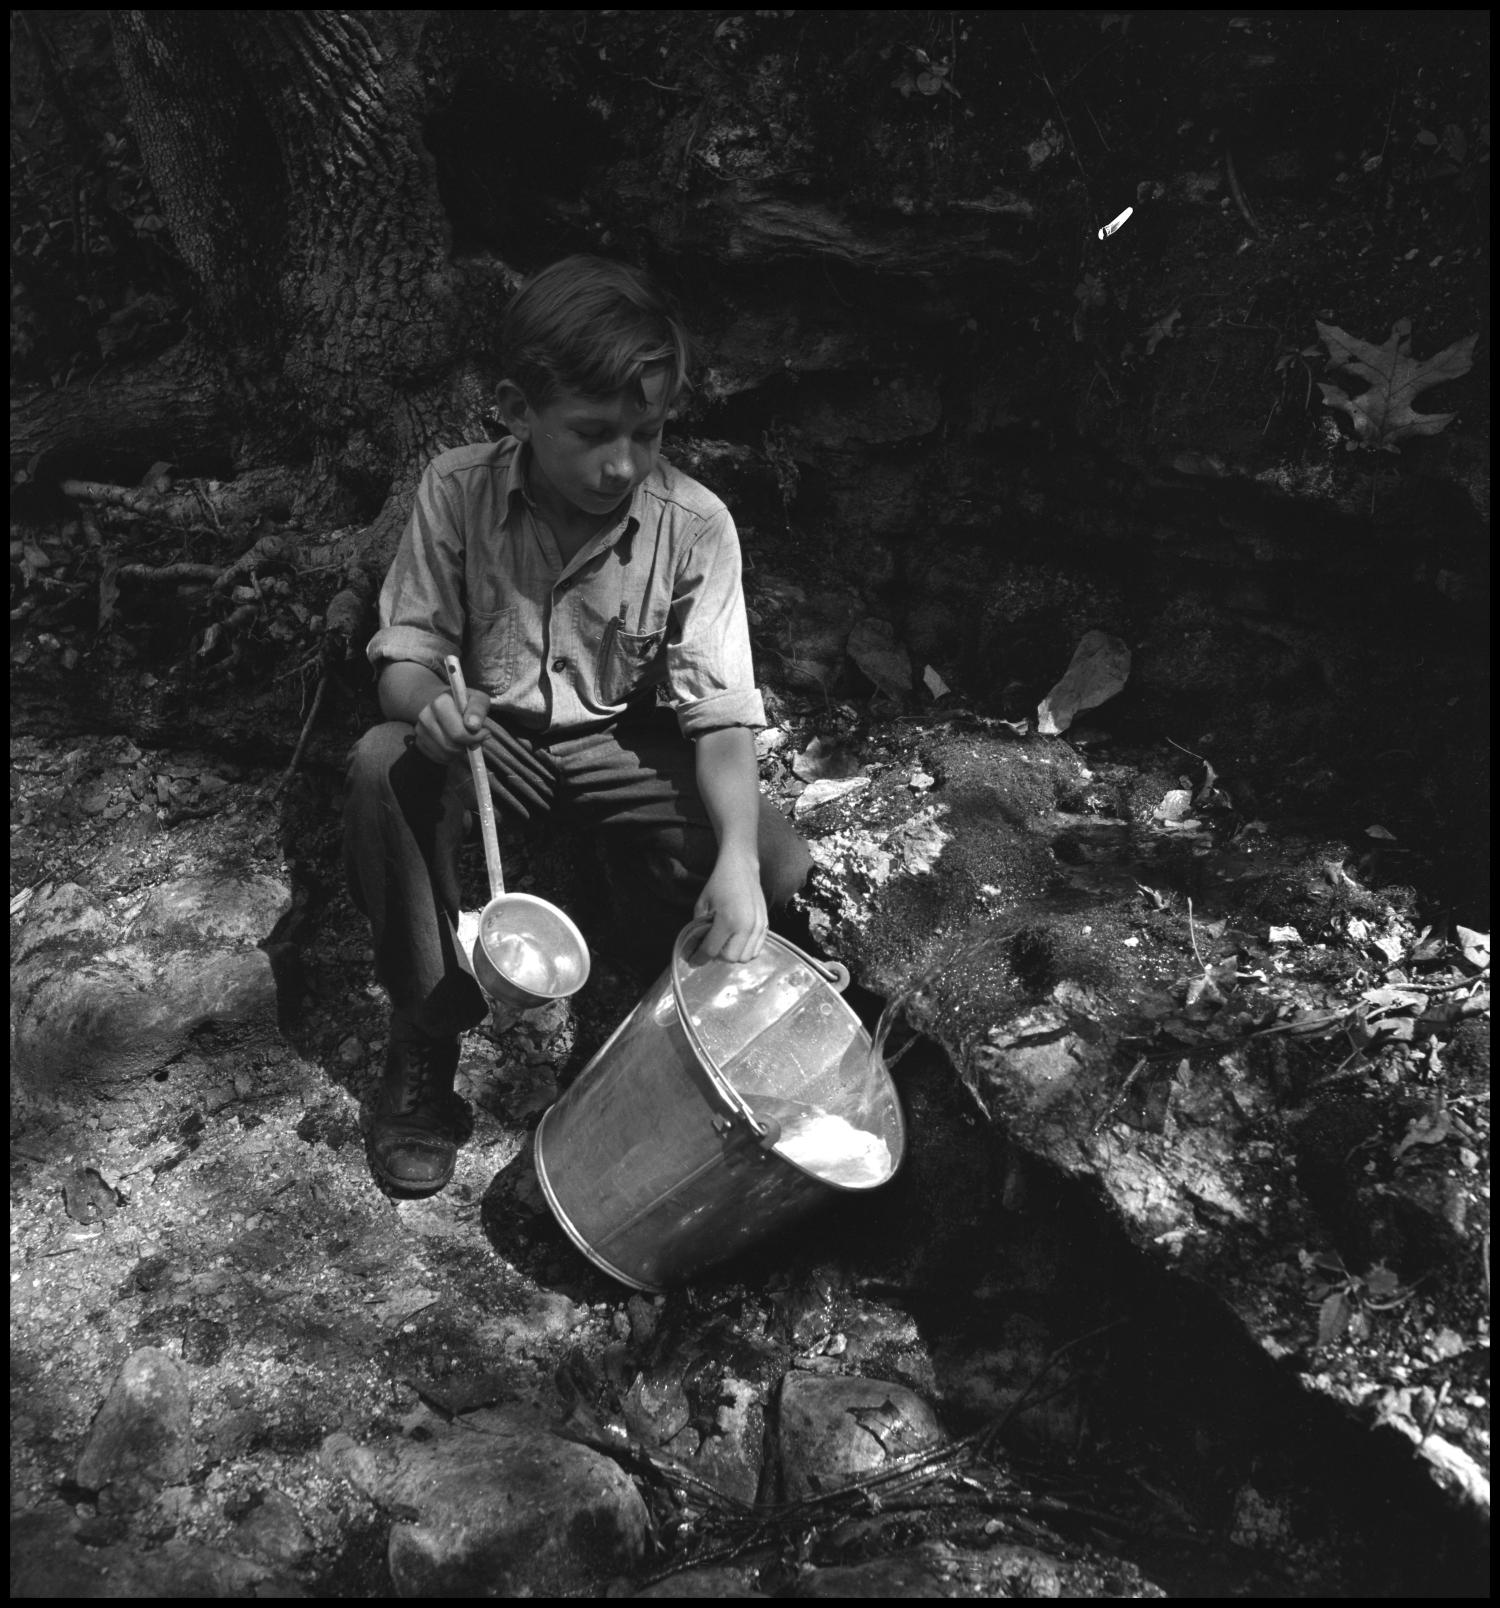 [Boy filling bucket from stream], Photograph of a boy kneeling alongside a stream as he fills a bucket with water. He holds a ladle in his right hand.,